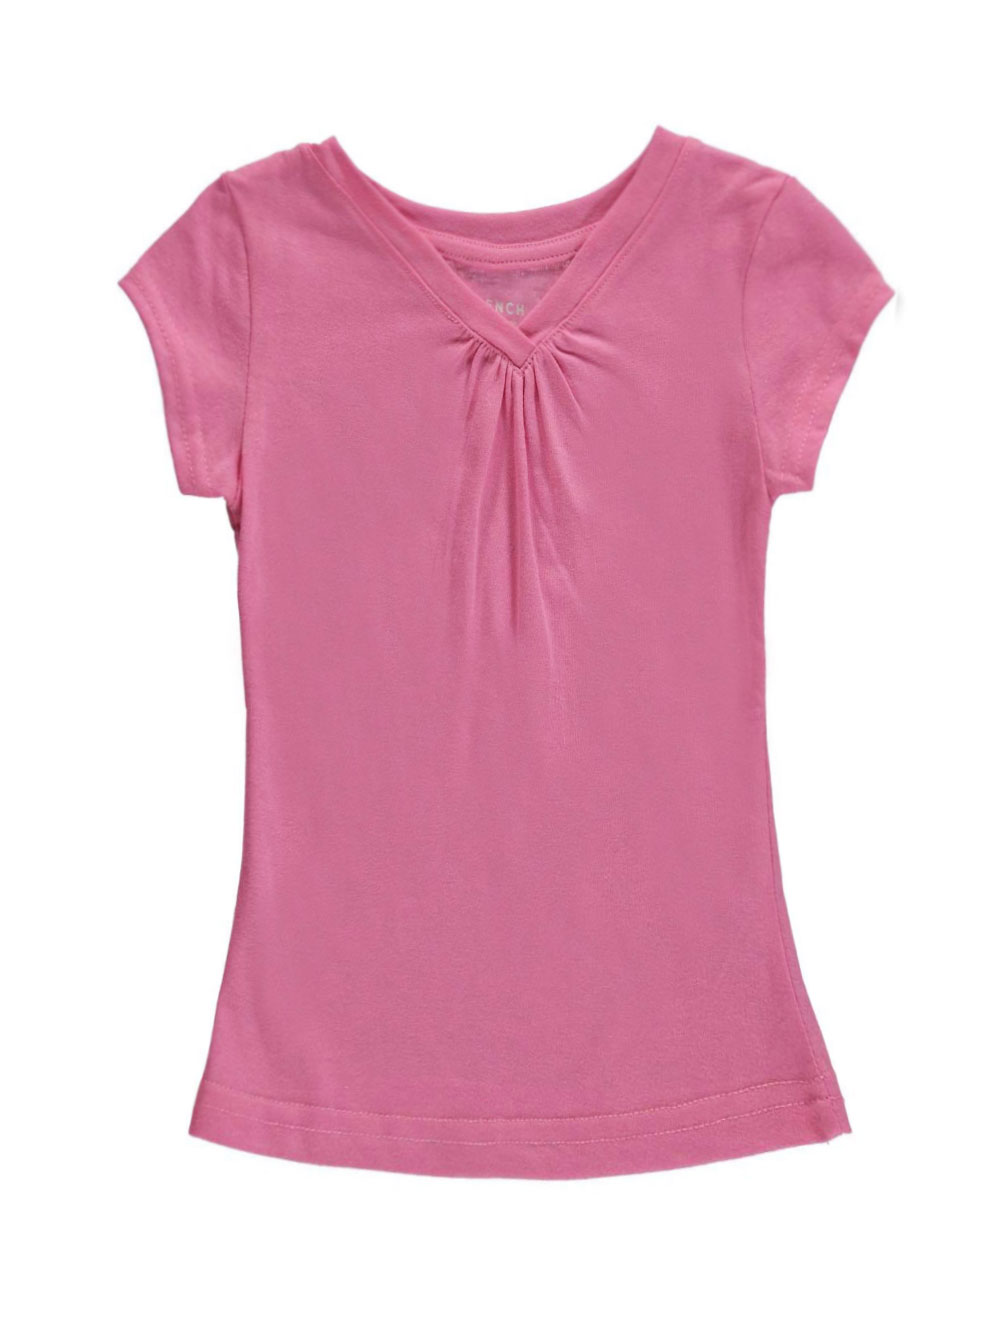 Image of French Toast Little Girls Ruched VNeck TShirt Sizes 4  6X  sachet pink 4